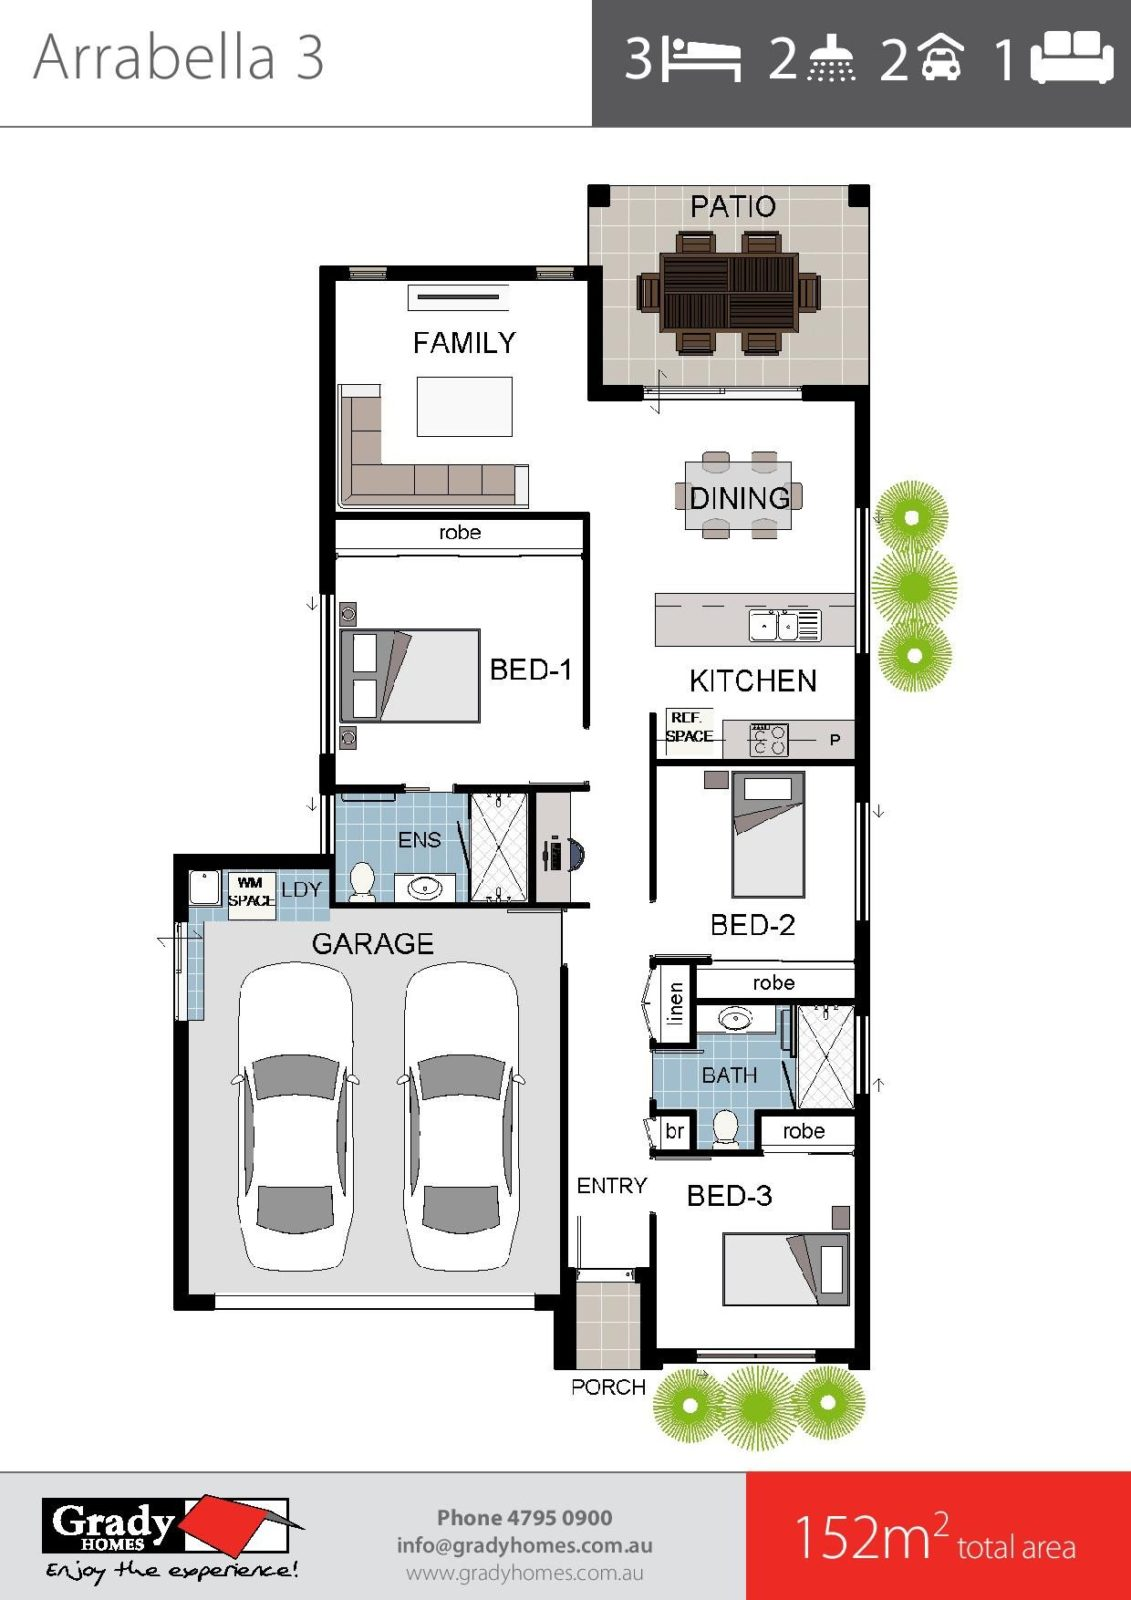 arrabella-3a-grady-homes-floor-plan-brochure-2